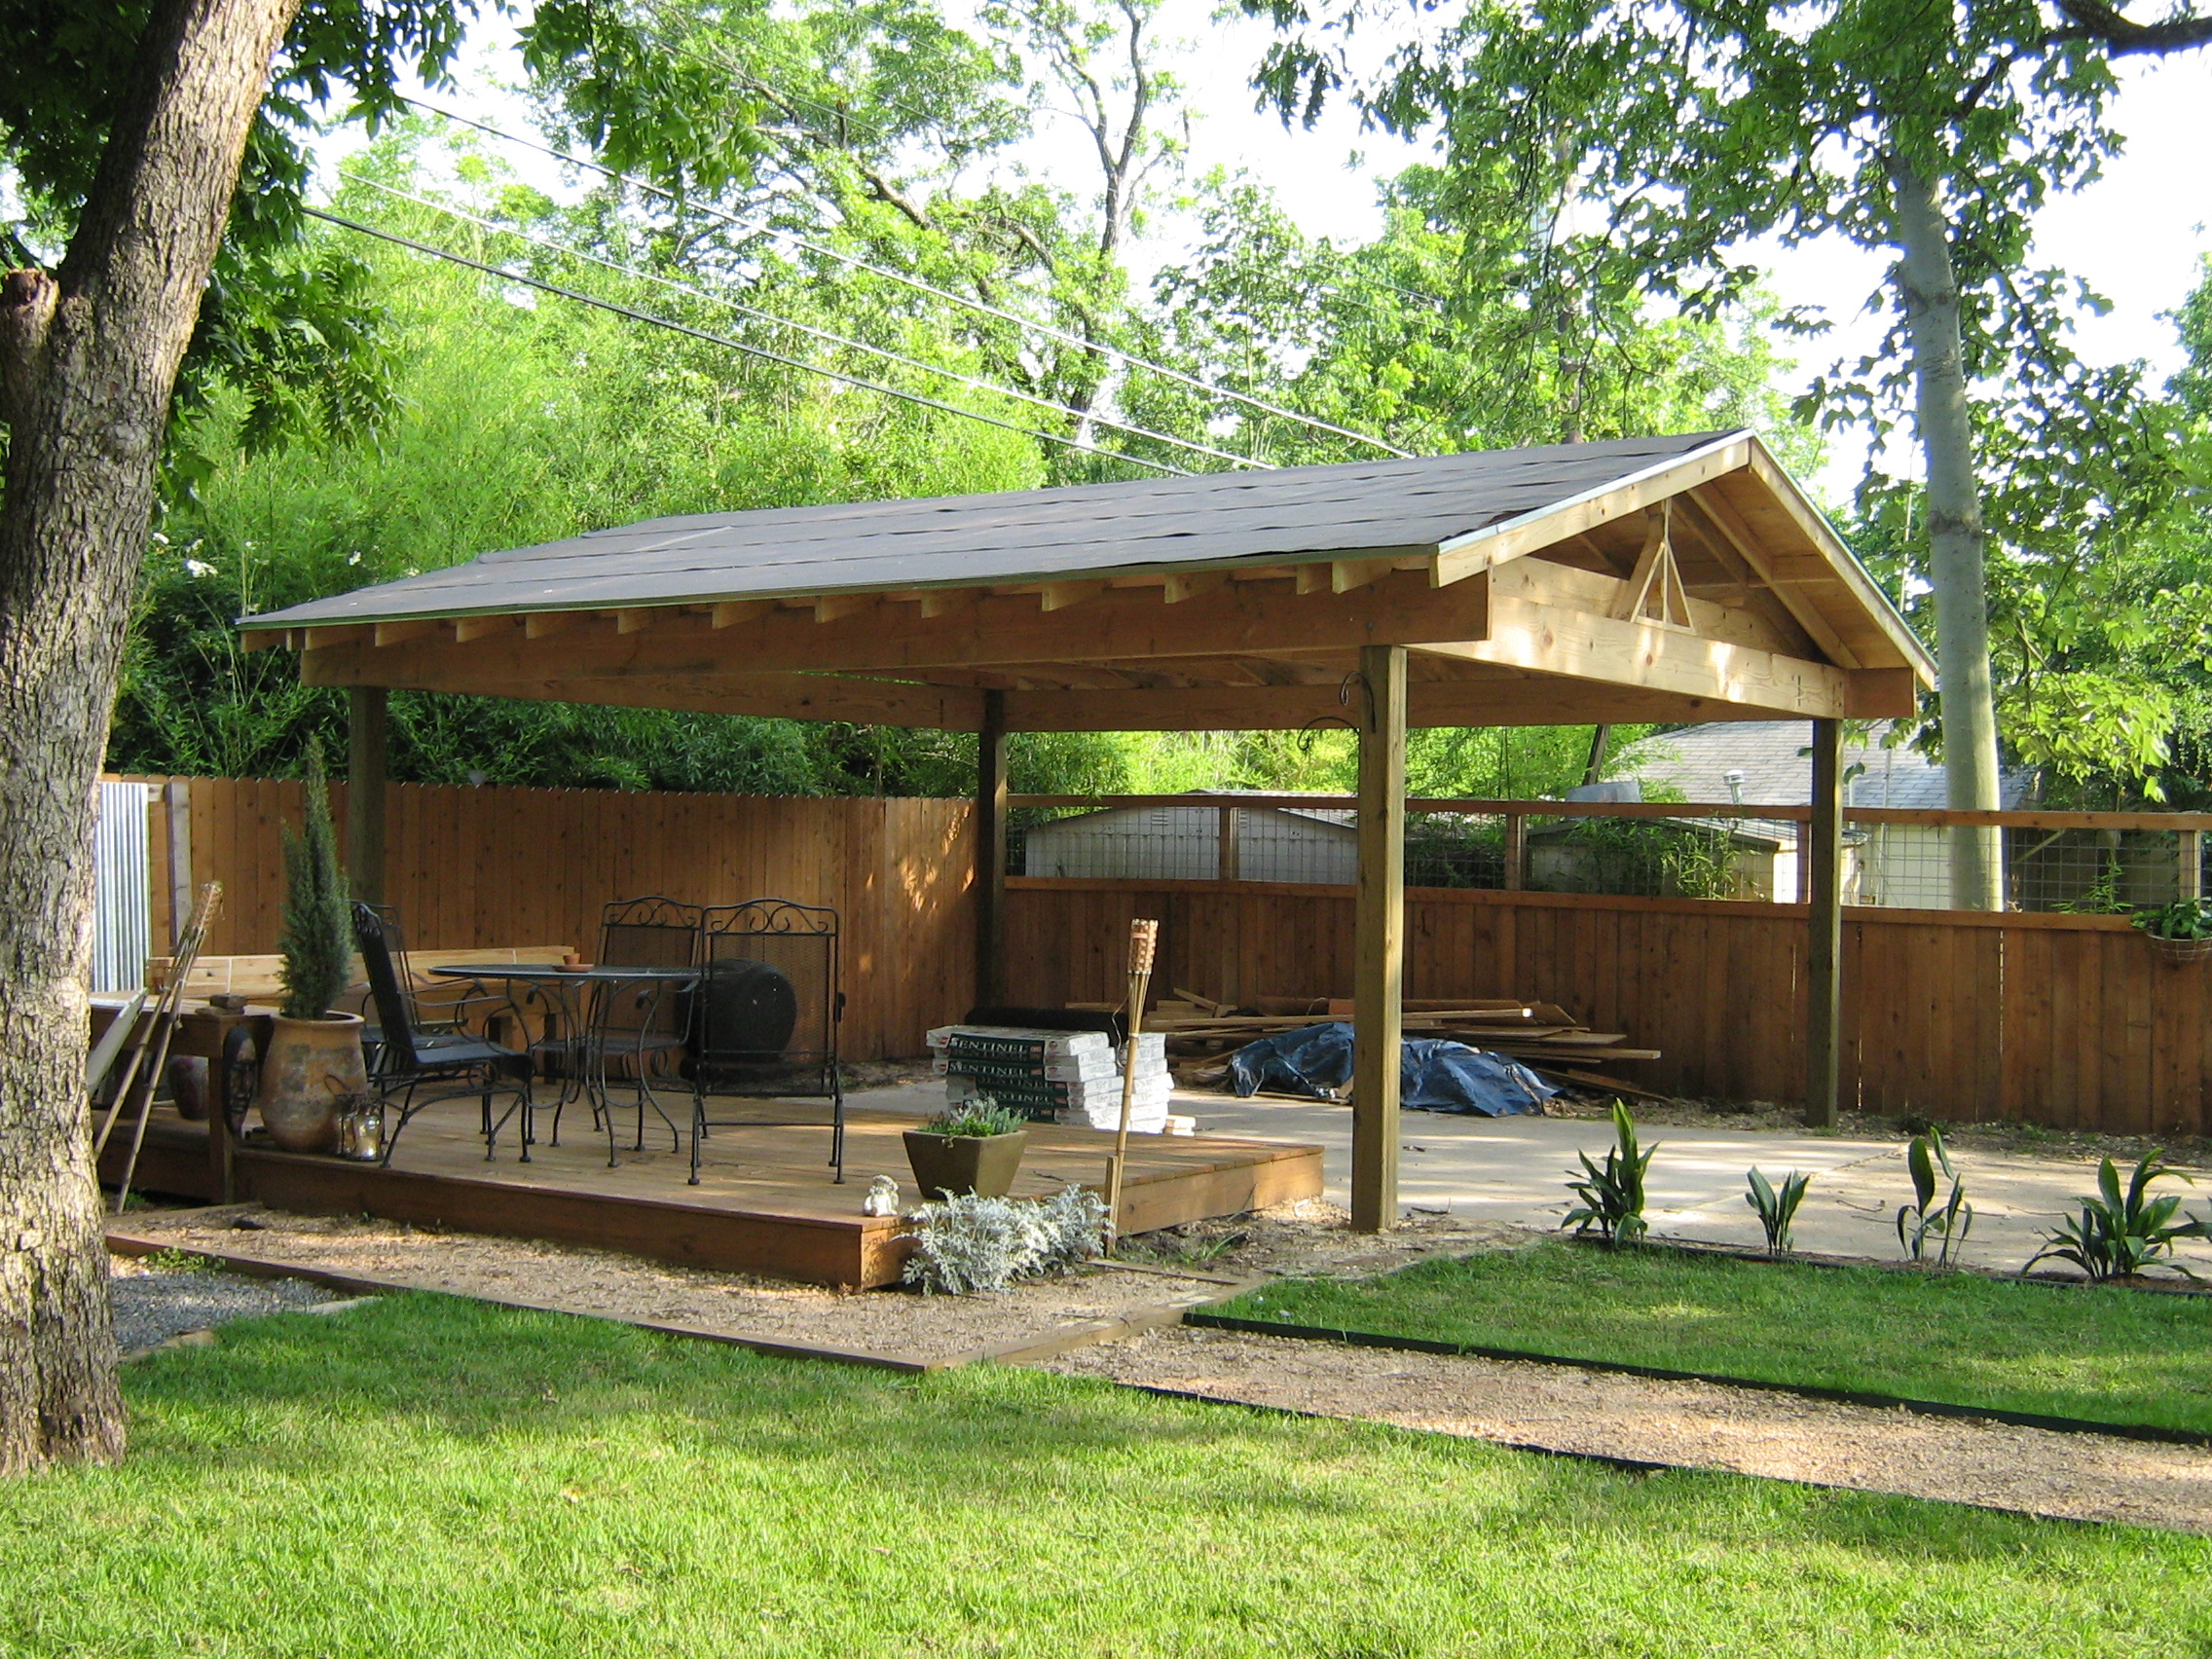 Do It Yourself Building Plans: How To Build Wood Carport Kits Do It Yourself Plans